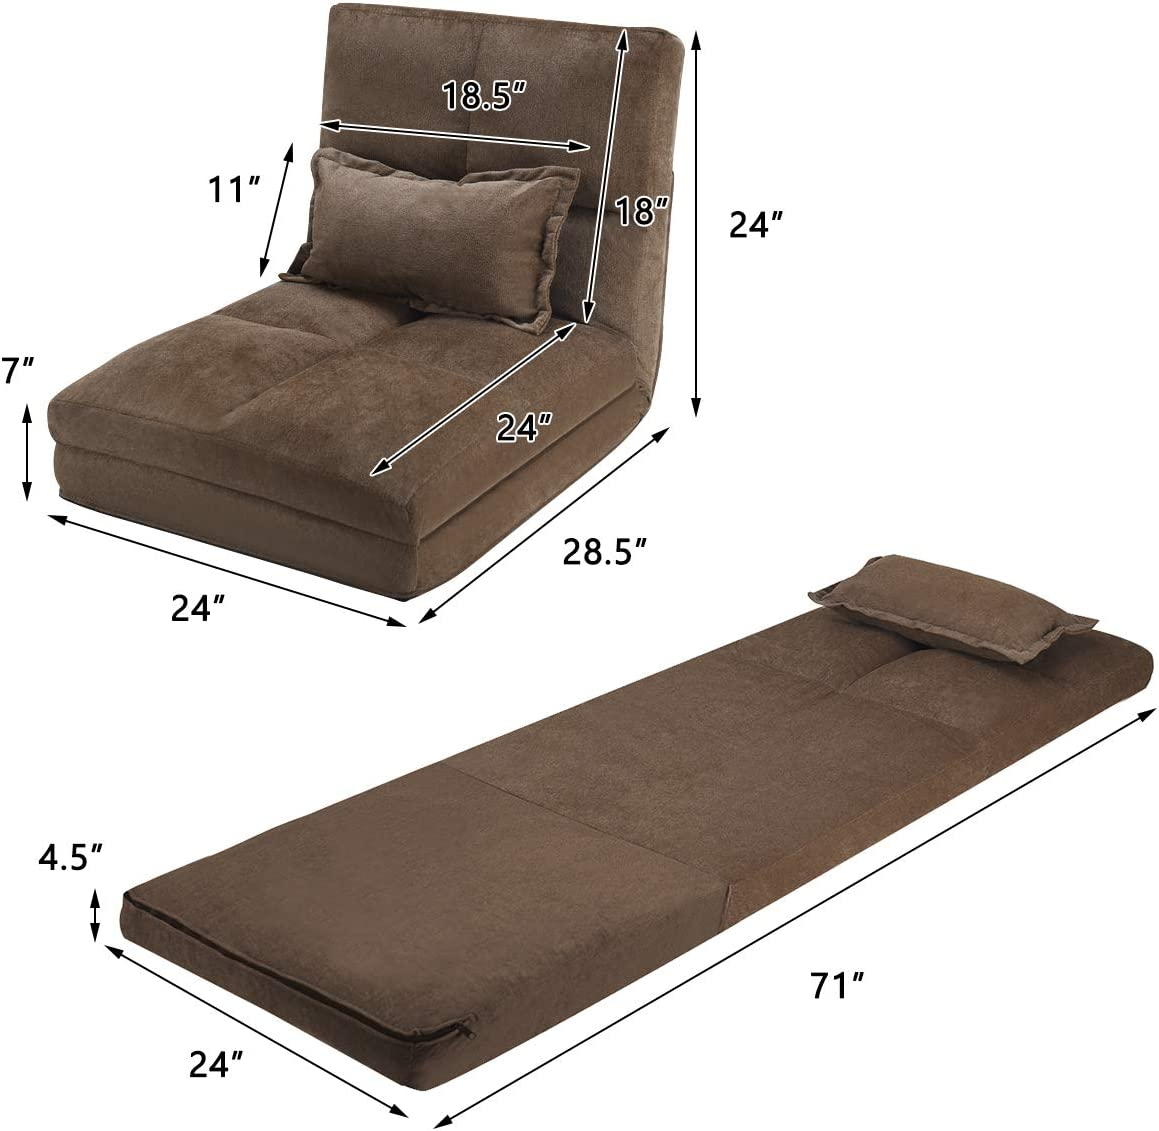 Giantex Triple Fold Down Sofa Bed, Adjustable Floor Couch Sofa with One Pillow, 6 Reclining Position, Convertible Upholstered Guest Sleeper, Modern Folding Lounge Chaise for Living Room and Bedroom